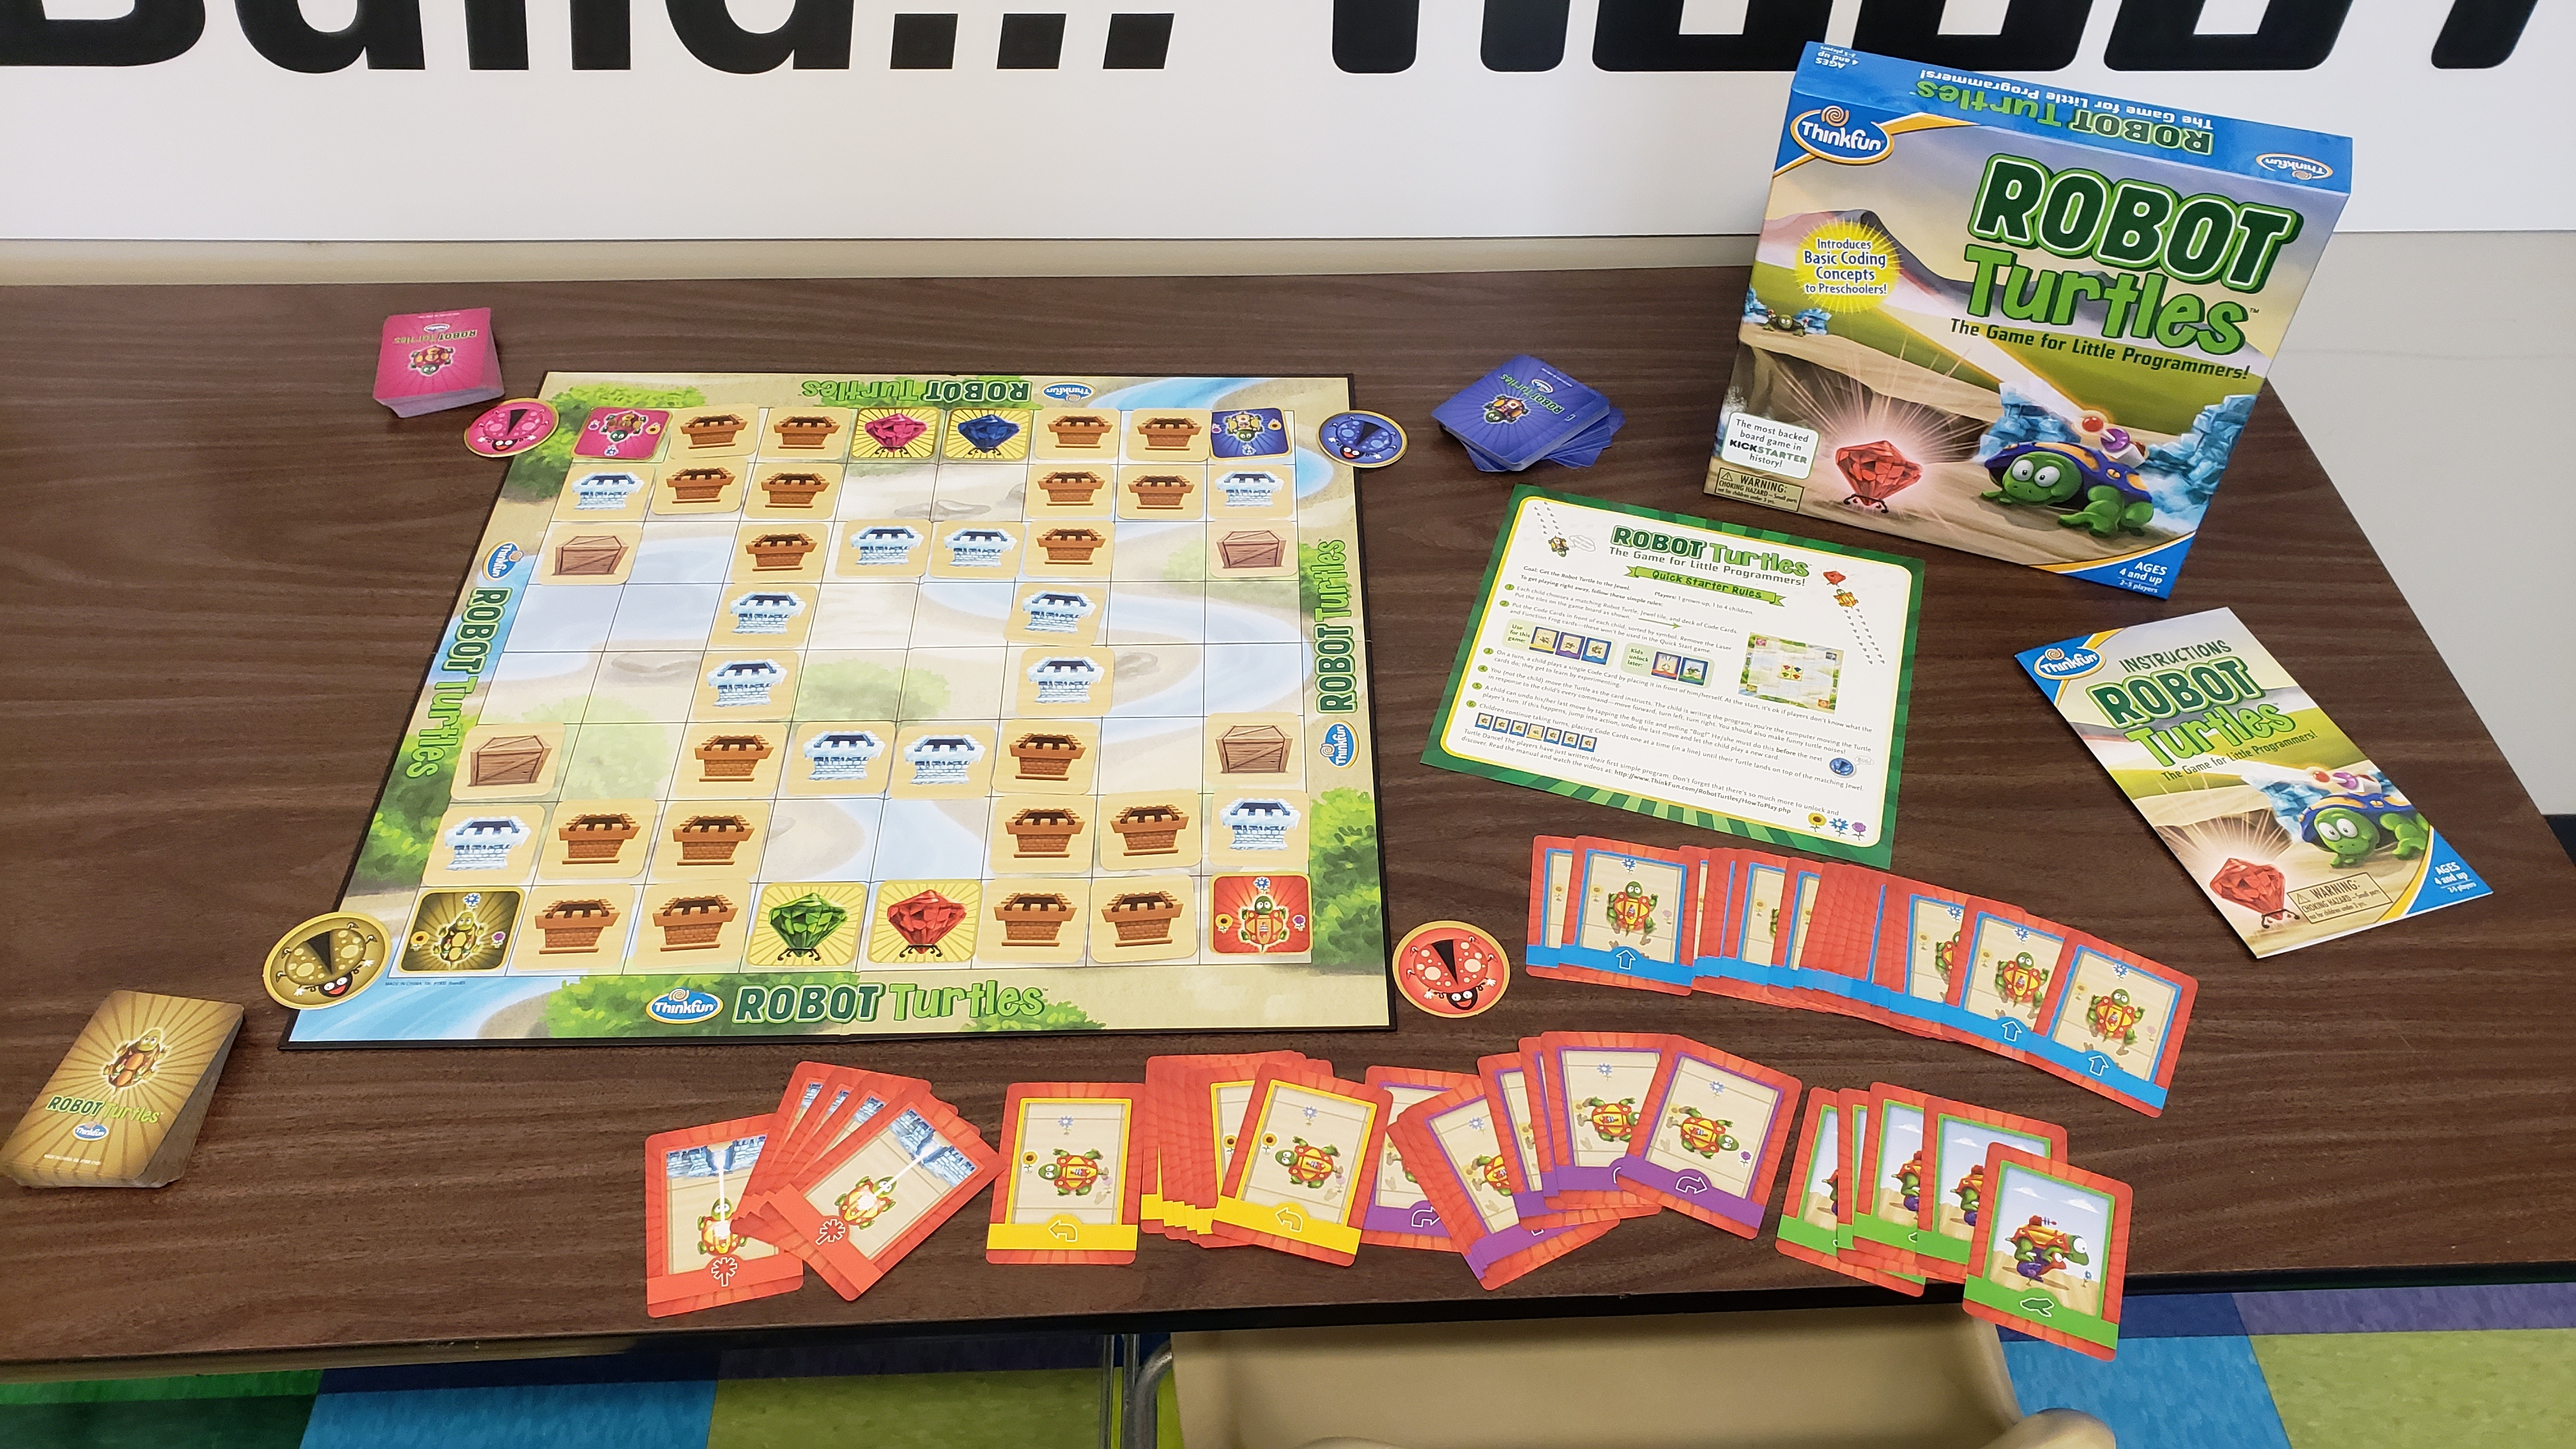 Coding Board Game: Robot Turtles. Ages 4 and up. 2 to 5 players.